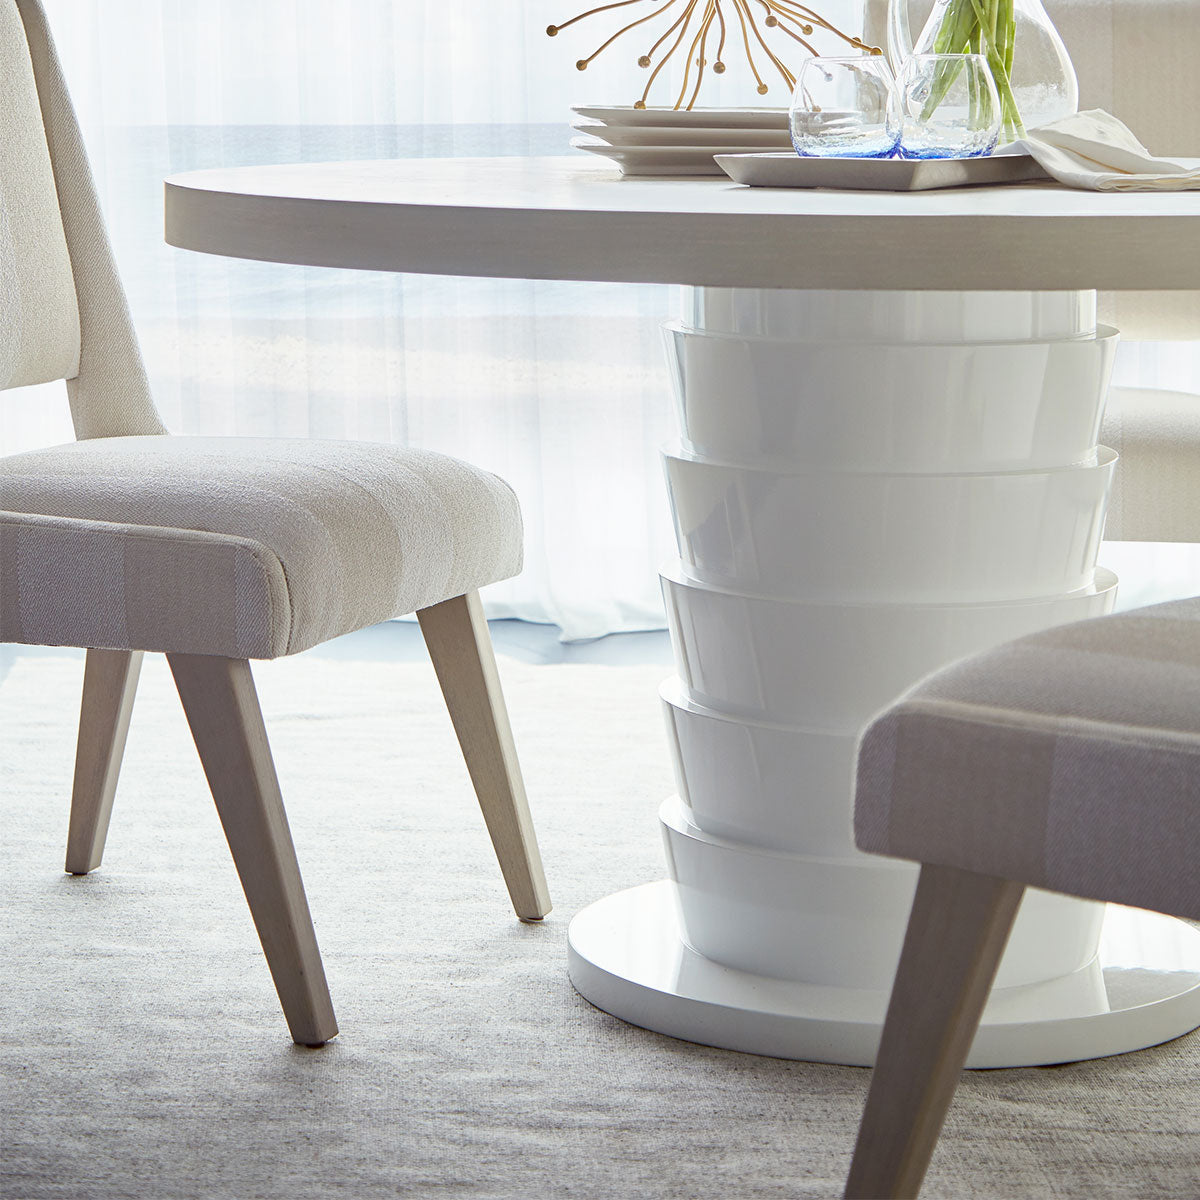 Remarkable Miami Round Dining Table Interior Design Ideas Philsoteloinfo